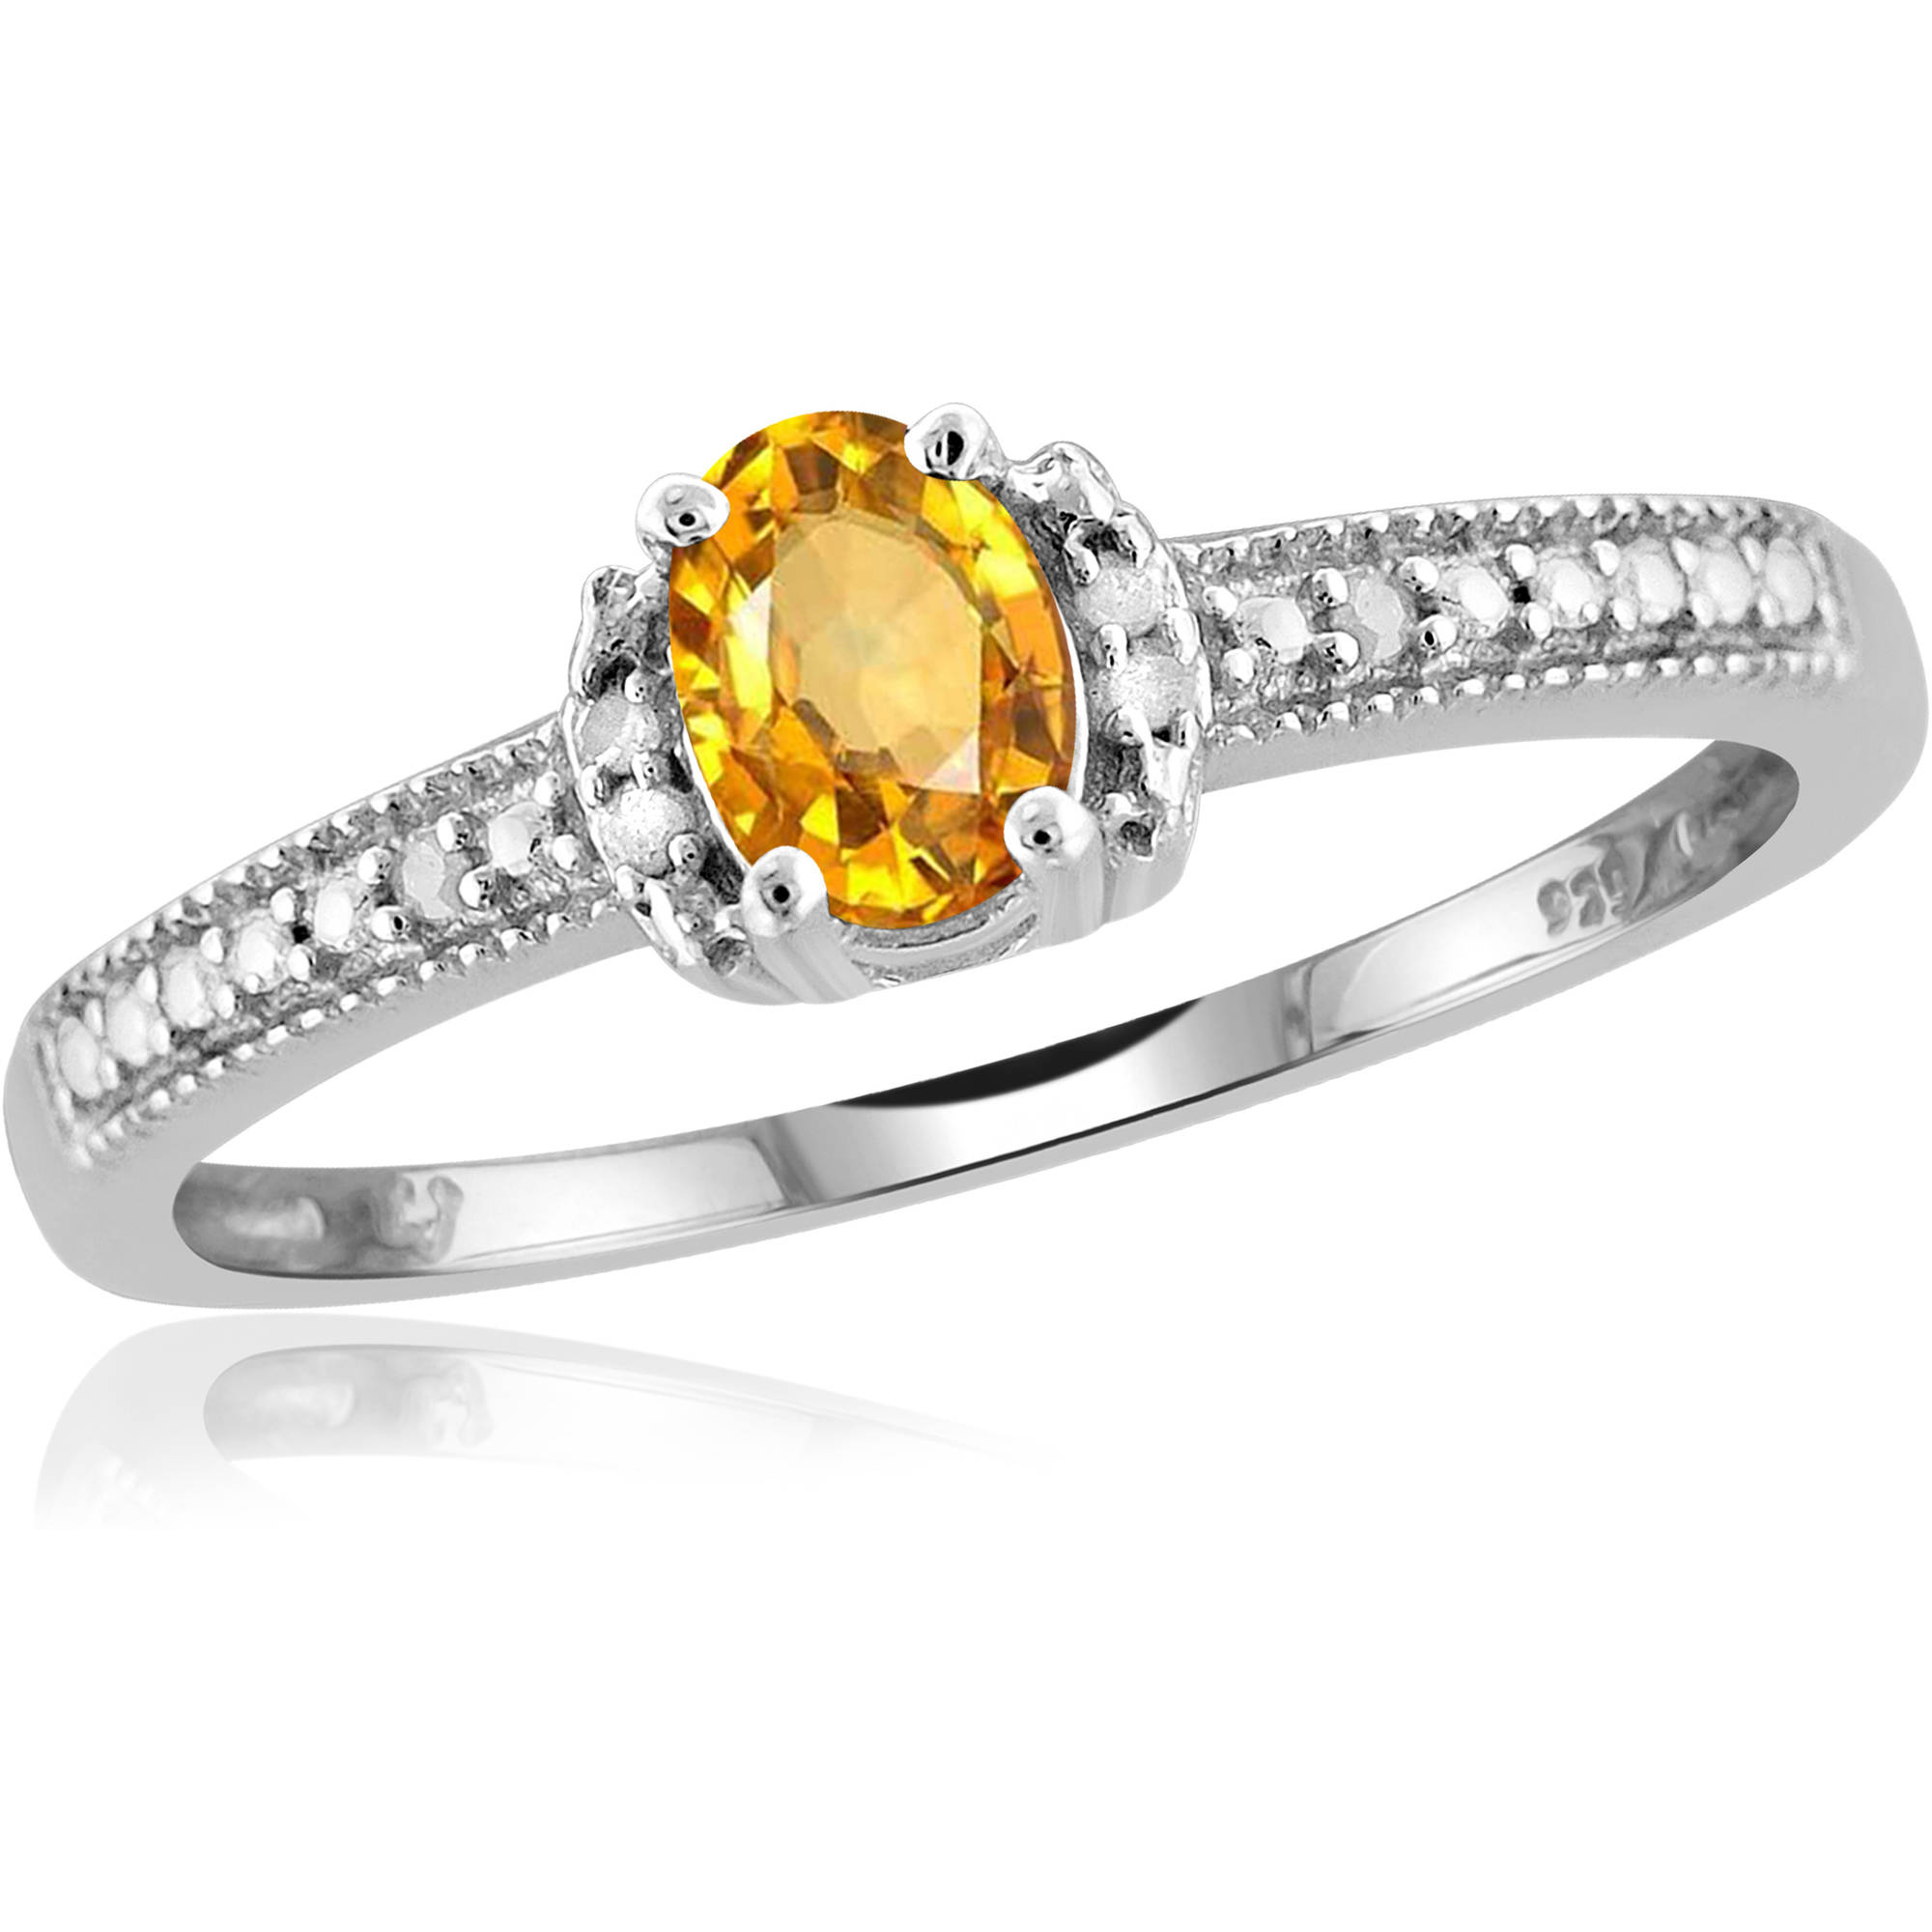 JewelersClub 0.46 Carat T.G.W. Citrine Gemstone and 1/20 Carat T.W. White Diamond Ring